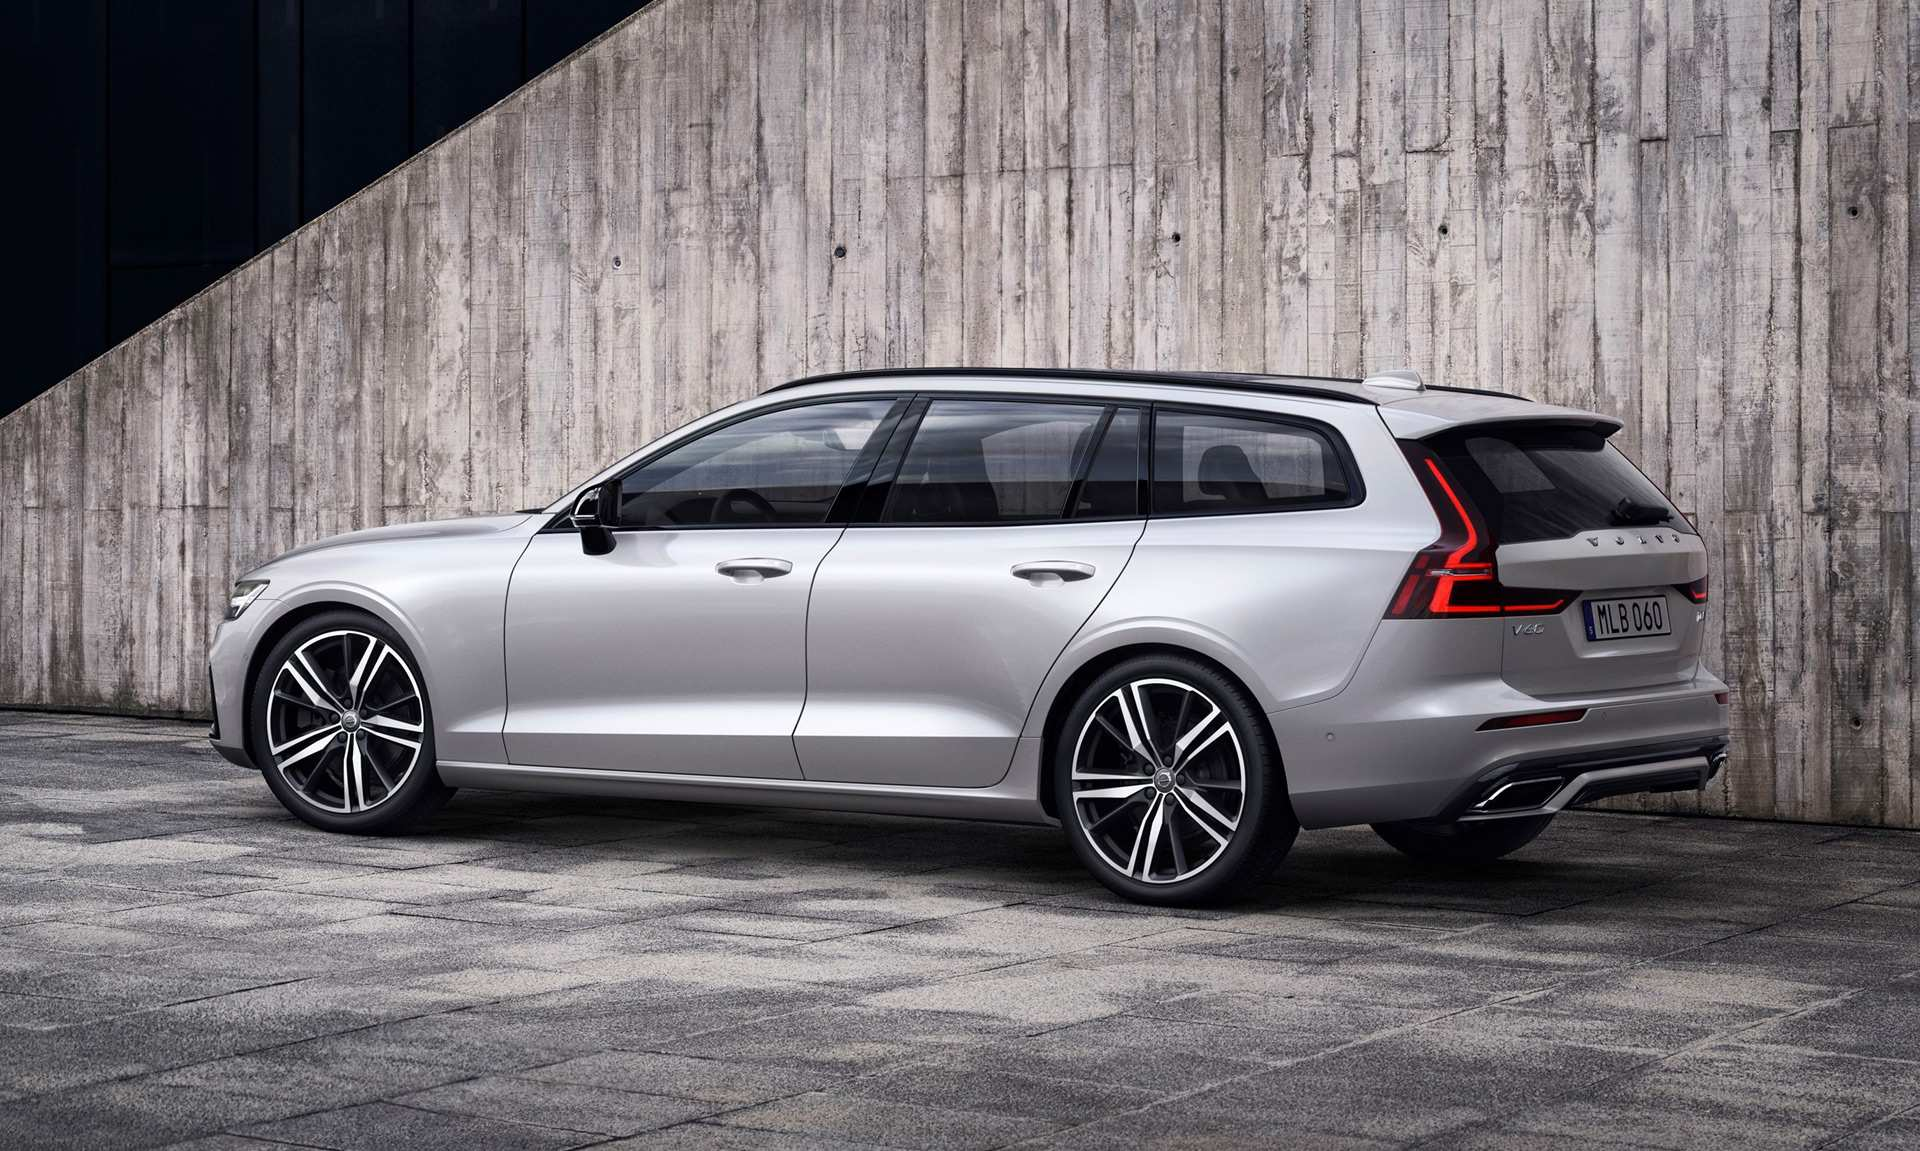 78 All New Volvo 2019 Station Wagon Reviews by Volvo 2019 Station Wagon